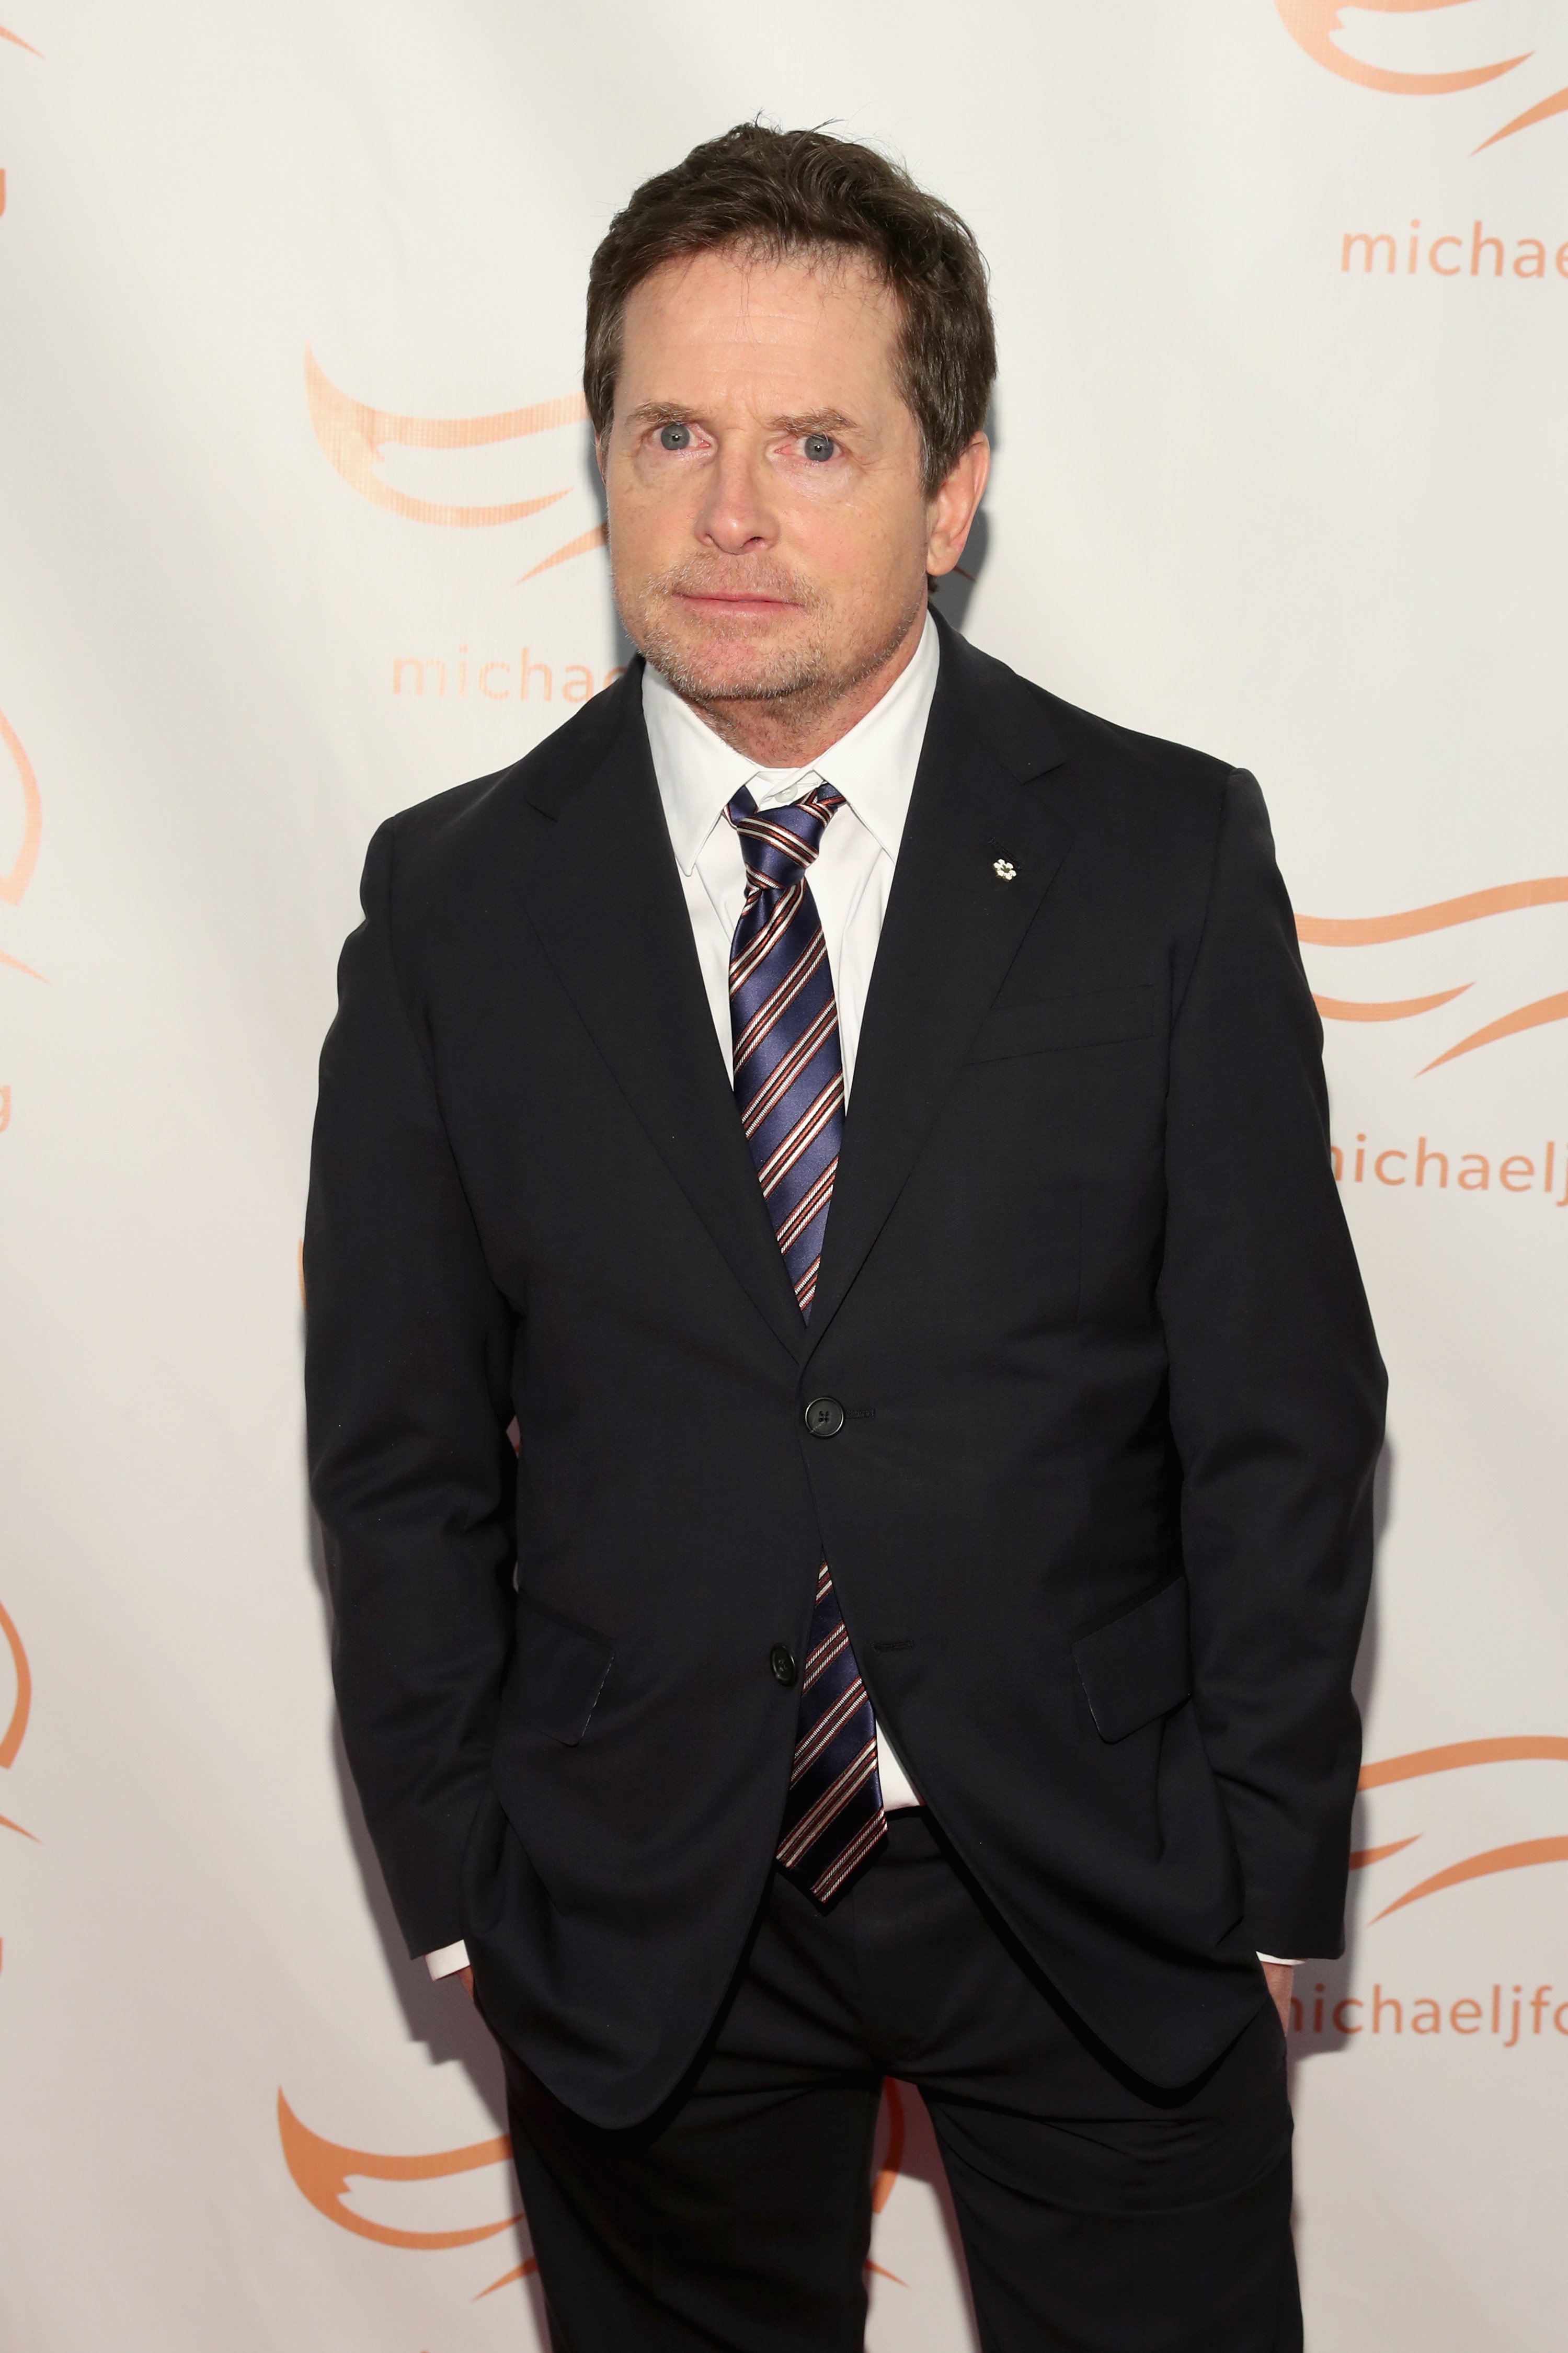 Michael J. Fox on the red carpet of A Funny Thing Happened On The Way To Cure Parkinson's benefitting The Michael J. Fox Foundation on November 10, 2018. | Photo: GettyImages